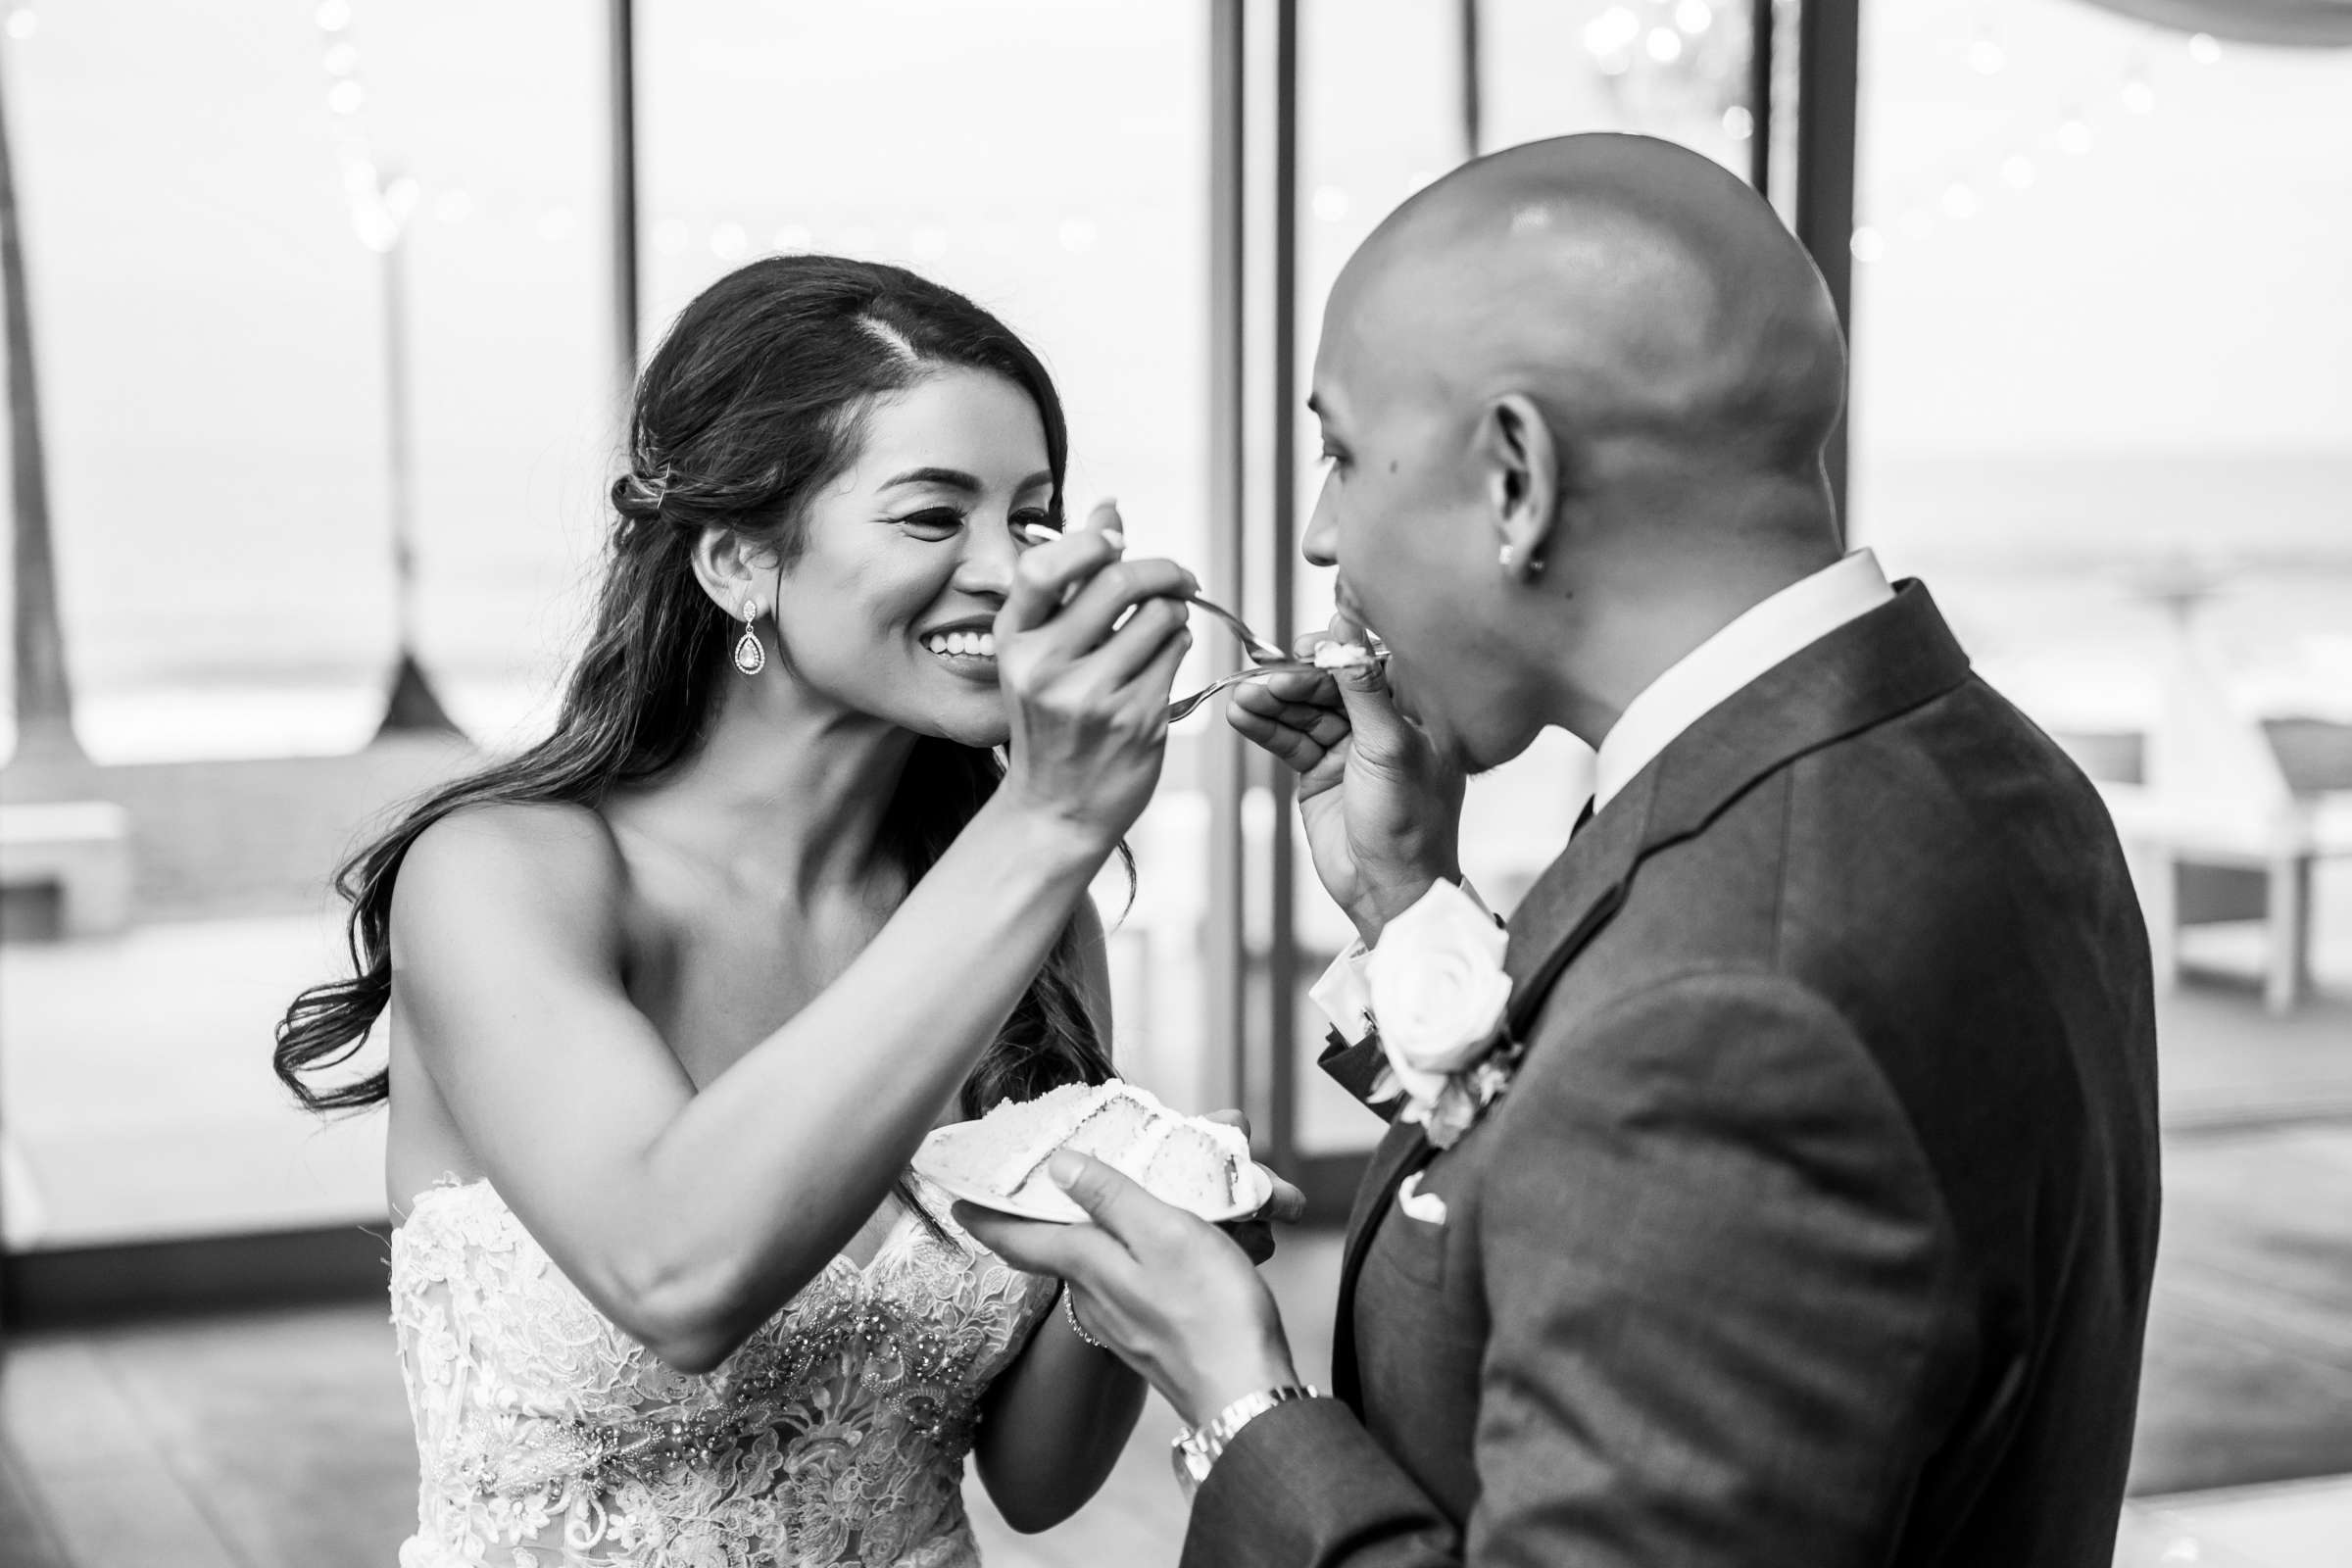 Scripps Seaside Forum Wedding coordinated by Lavish Weddings, Cindy and Justin Wedding Photo #381865 by True Photography